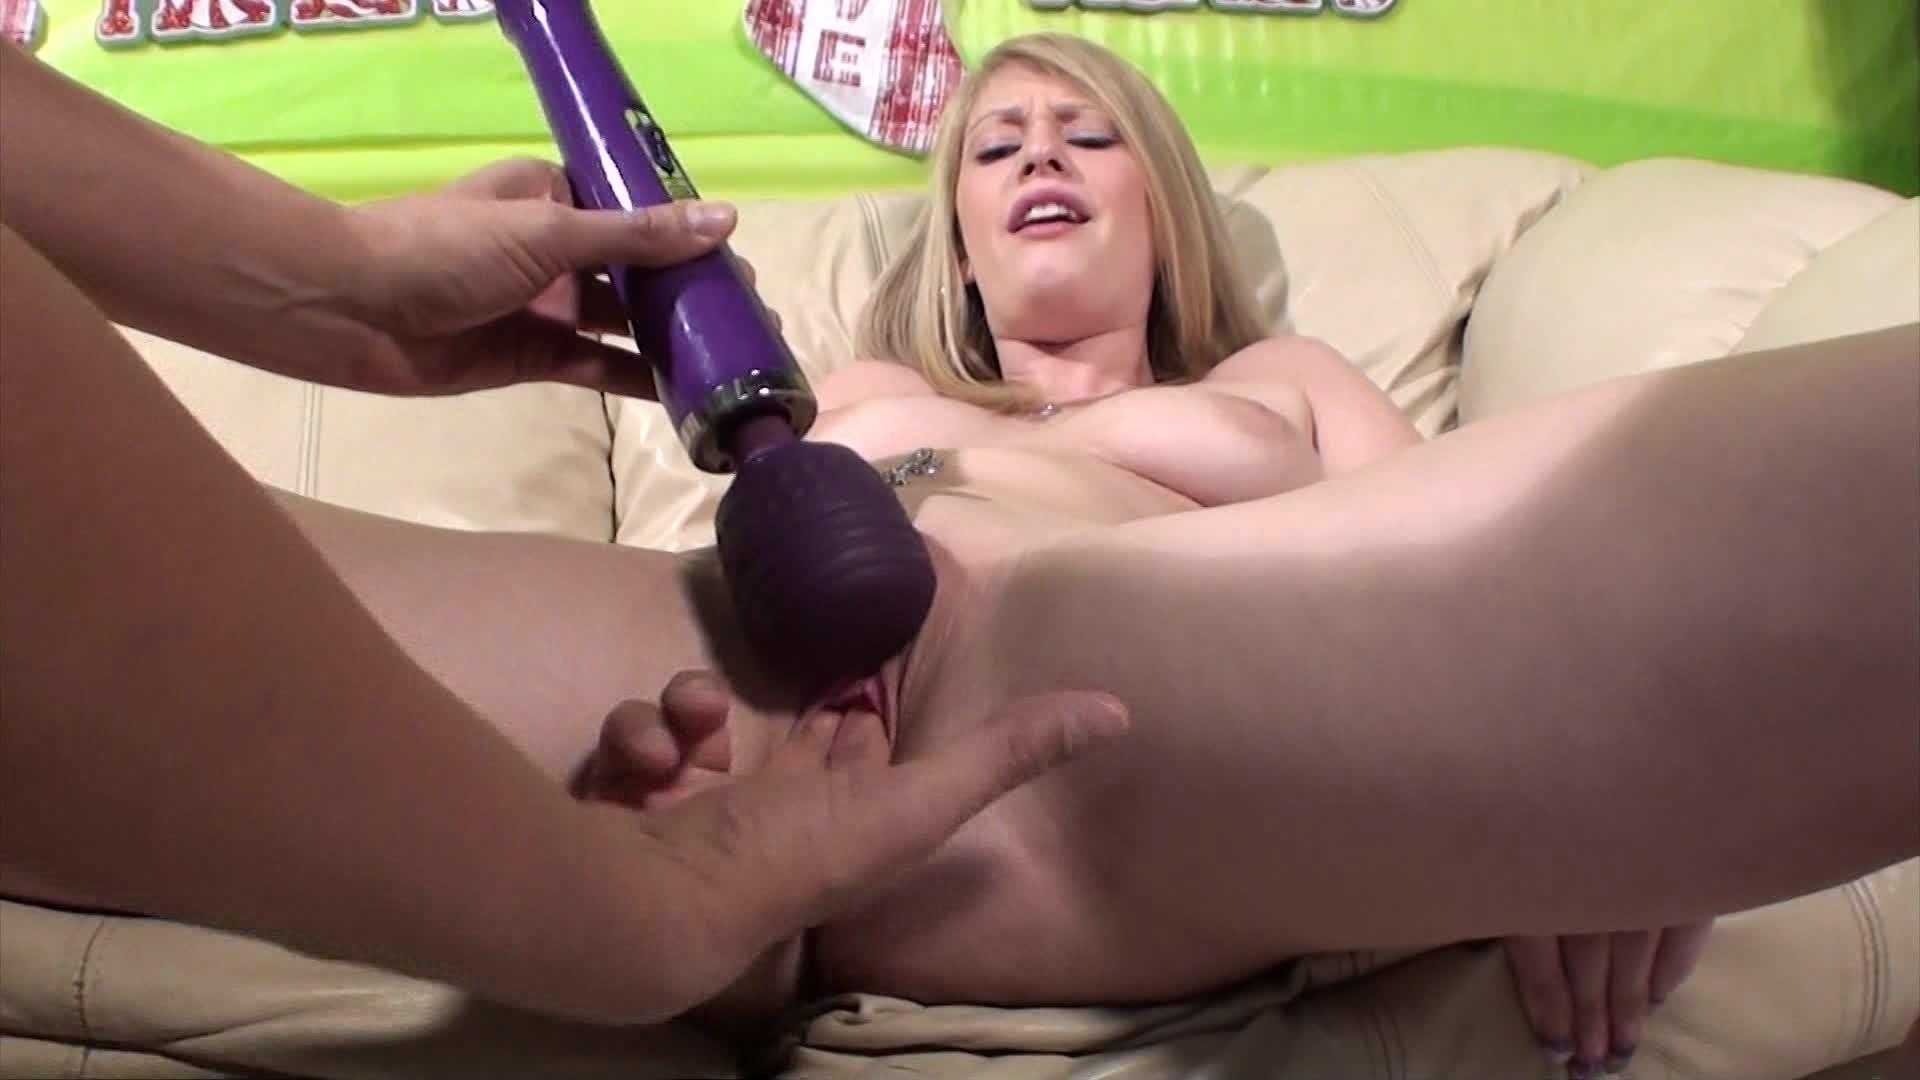 Squirt video tube